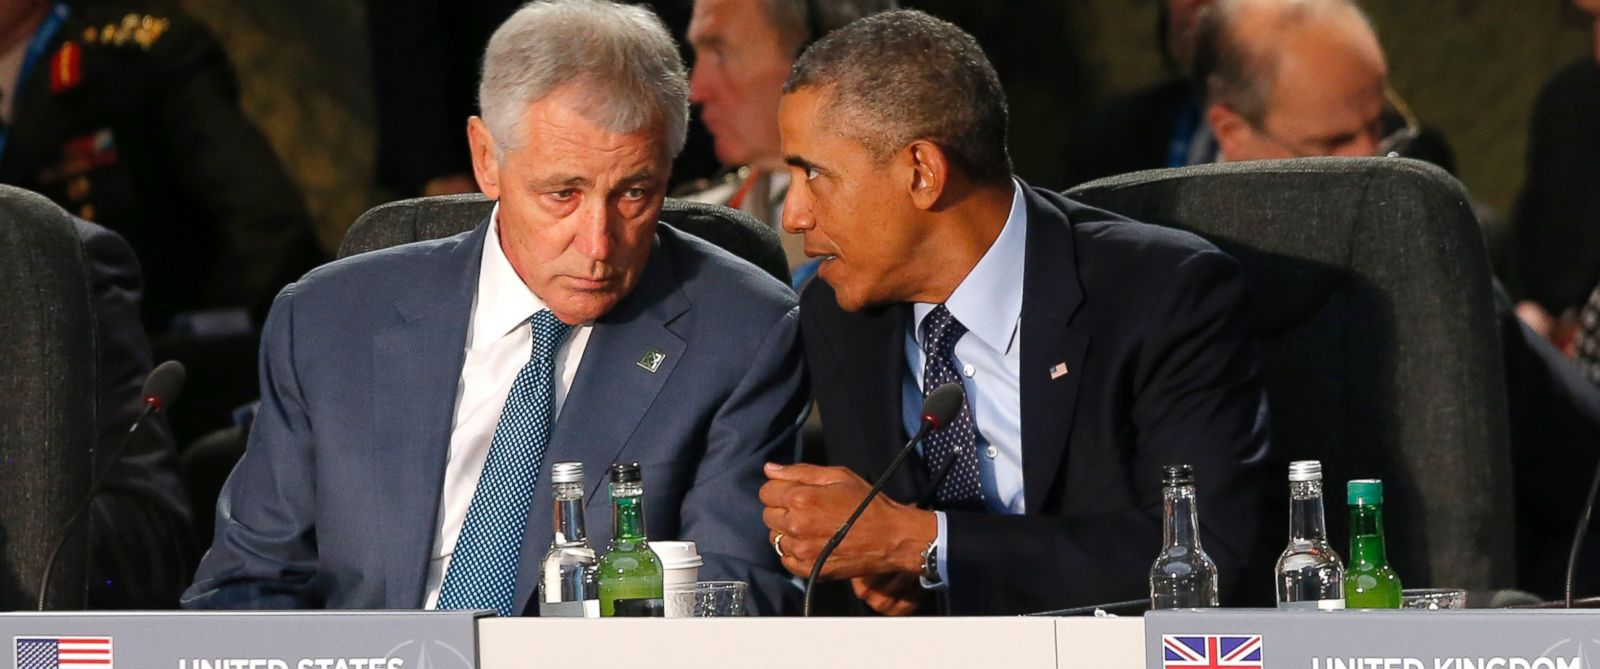 PHOTO: U.S. President Barack Obama speaks with U.S. Defense Secretary Chuck Hagel at a leaders meeting on the future of NATO at Celtic Manor, Newport, Wales, Sept. 5, 2014.